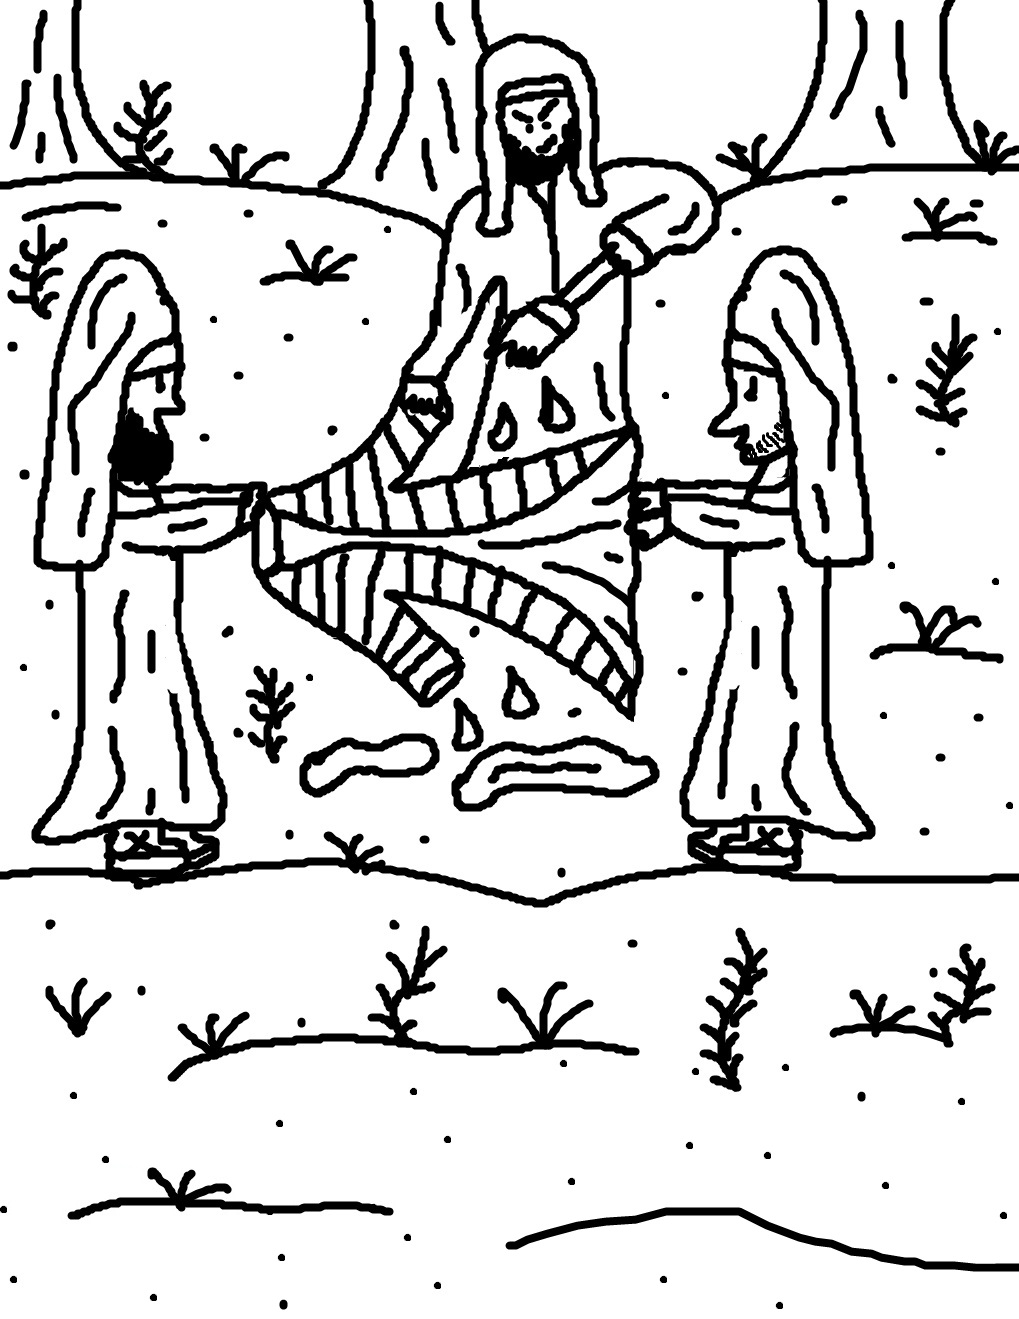 Josephs Brothers Smearing Blood On Coat No Scripture Coloring Pages